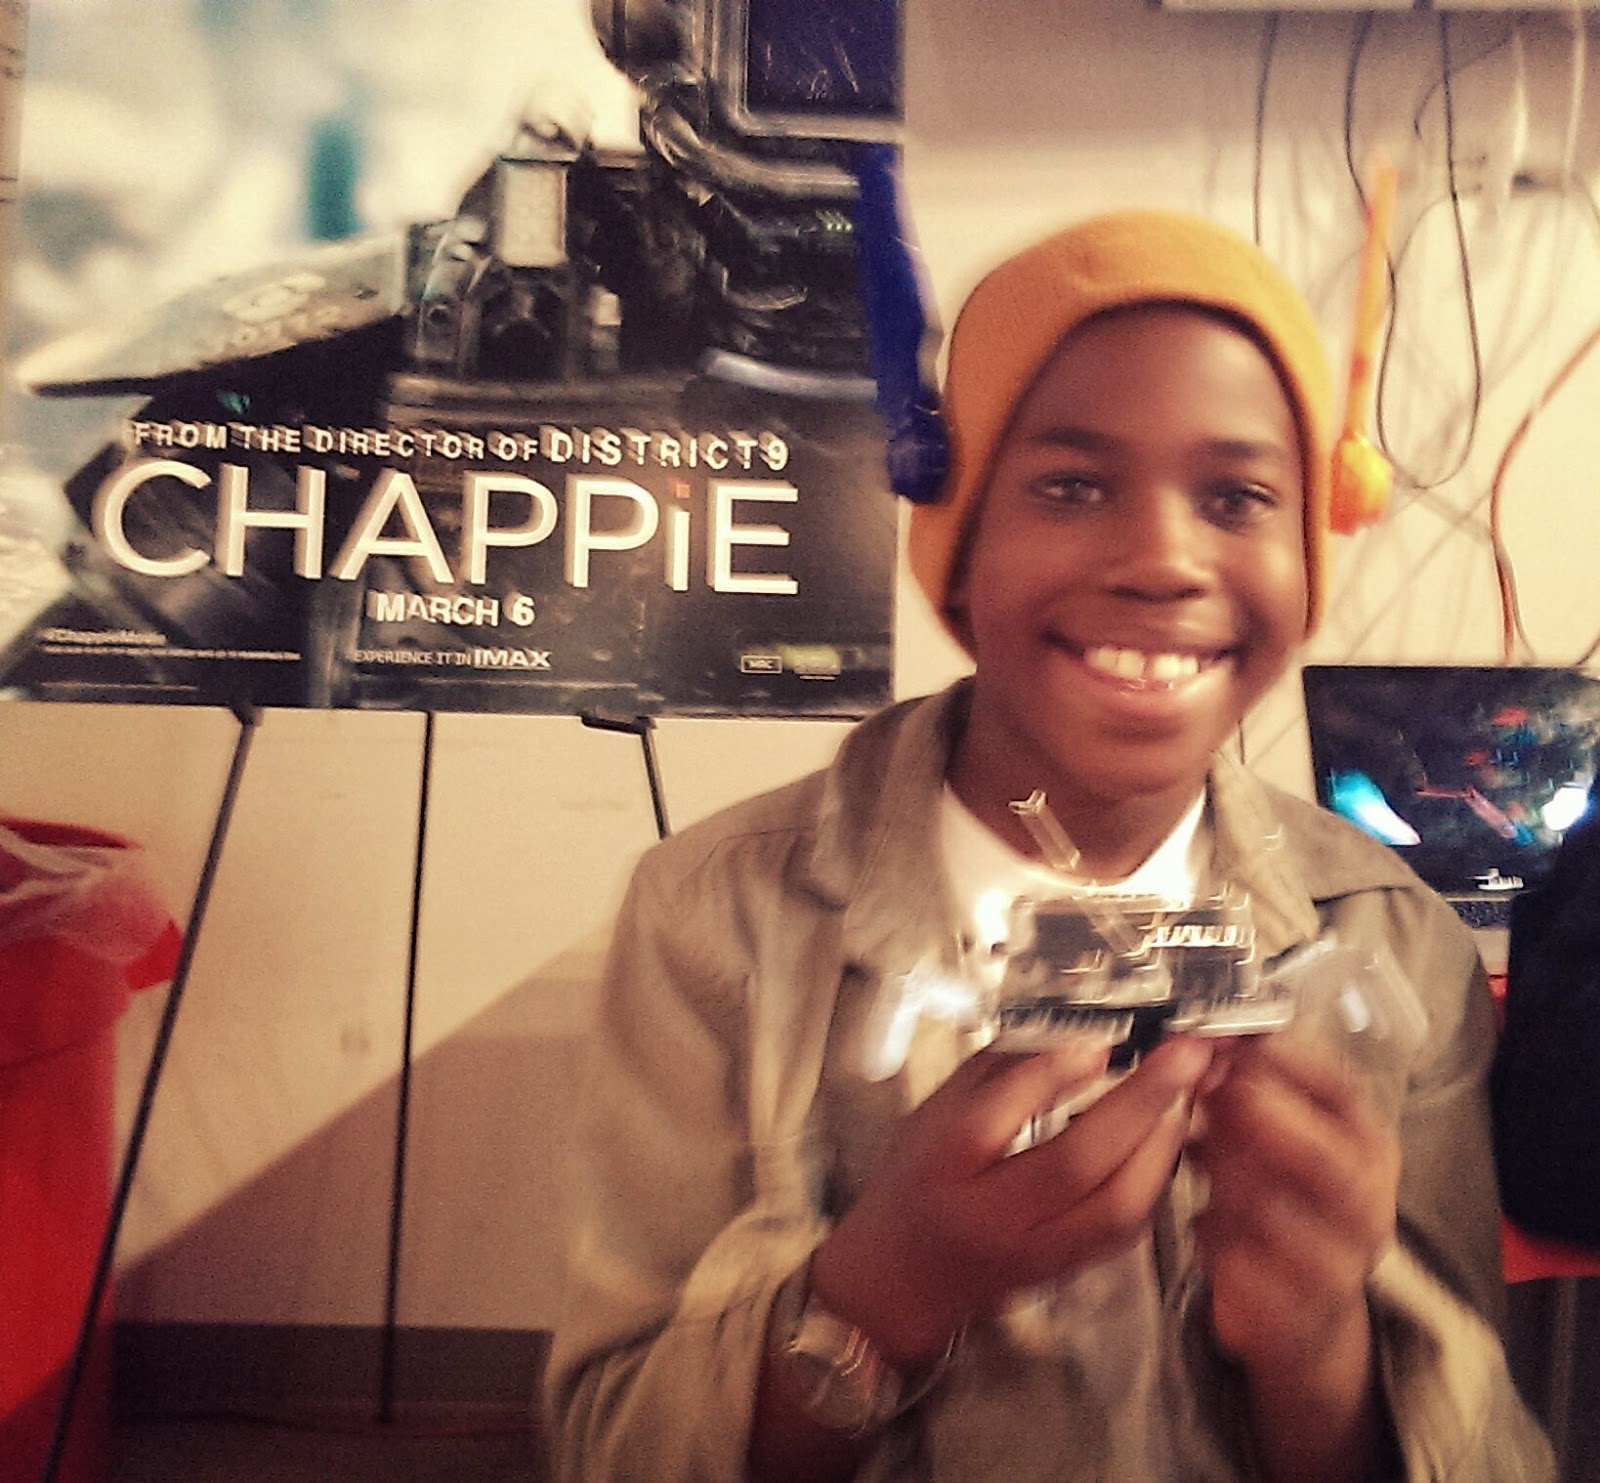 Robot%2BCrab Chappie is Now In Theaters!!!